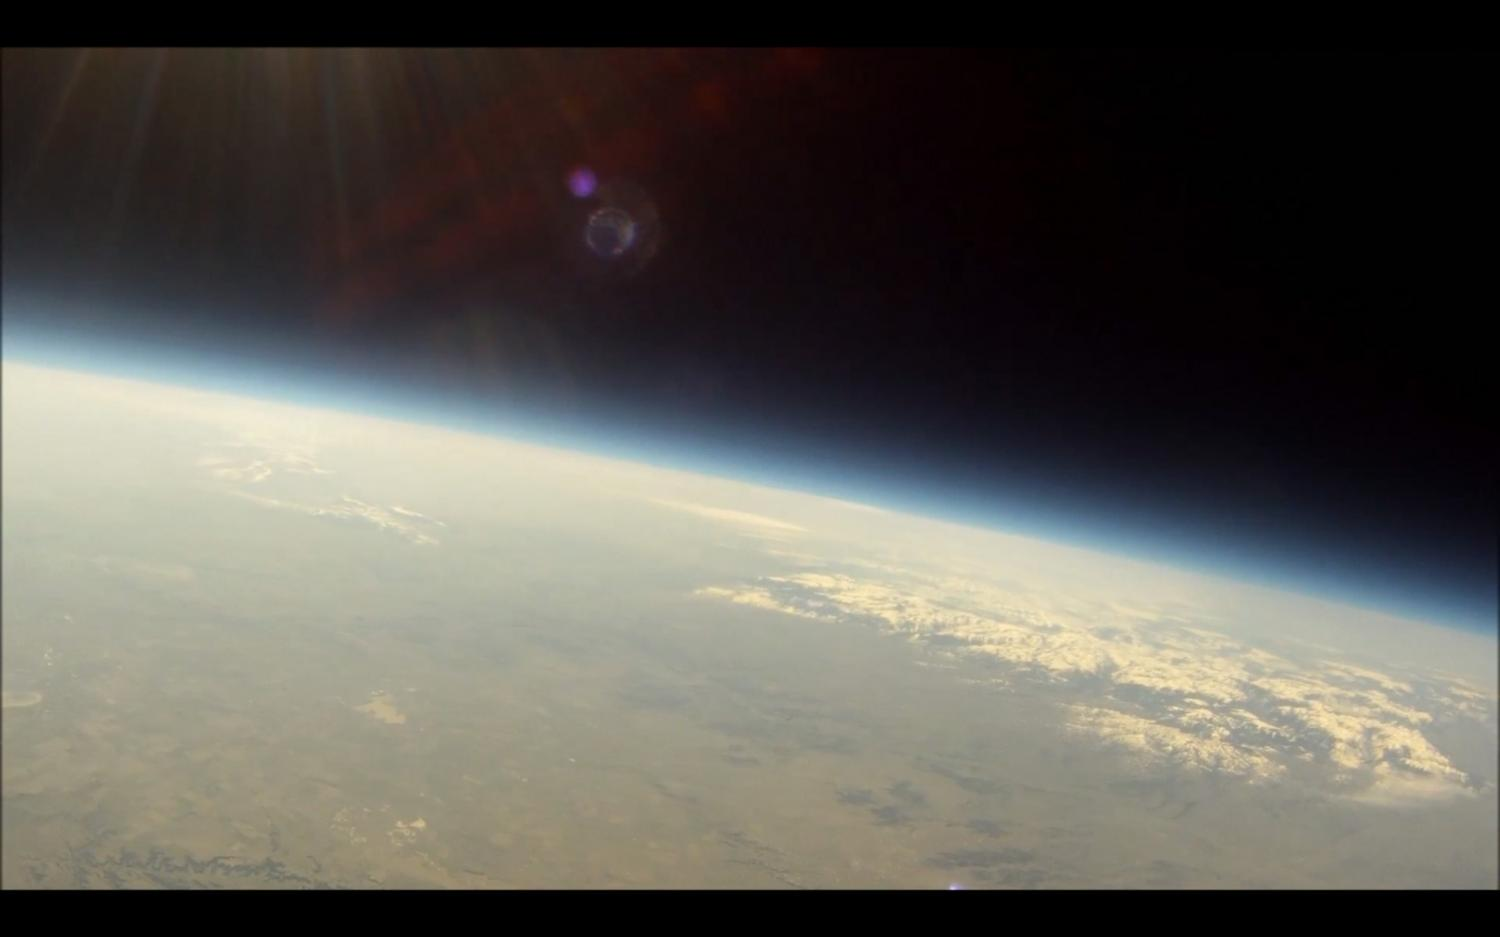 Eclipse balloons to study effect of Mars-like environment on life e5b7821c87